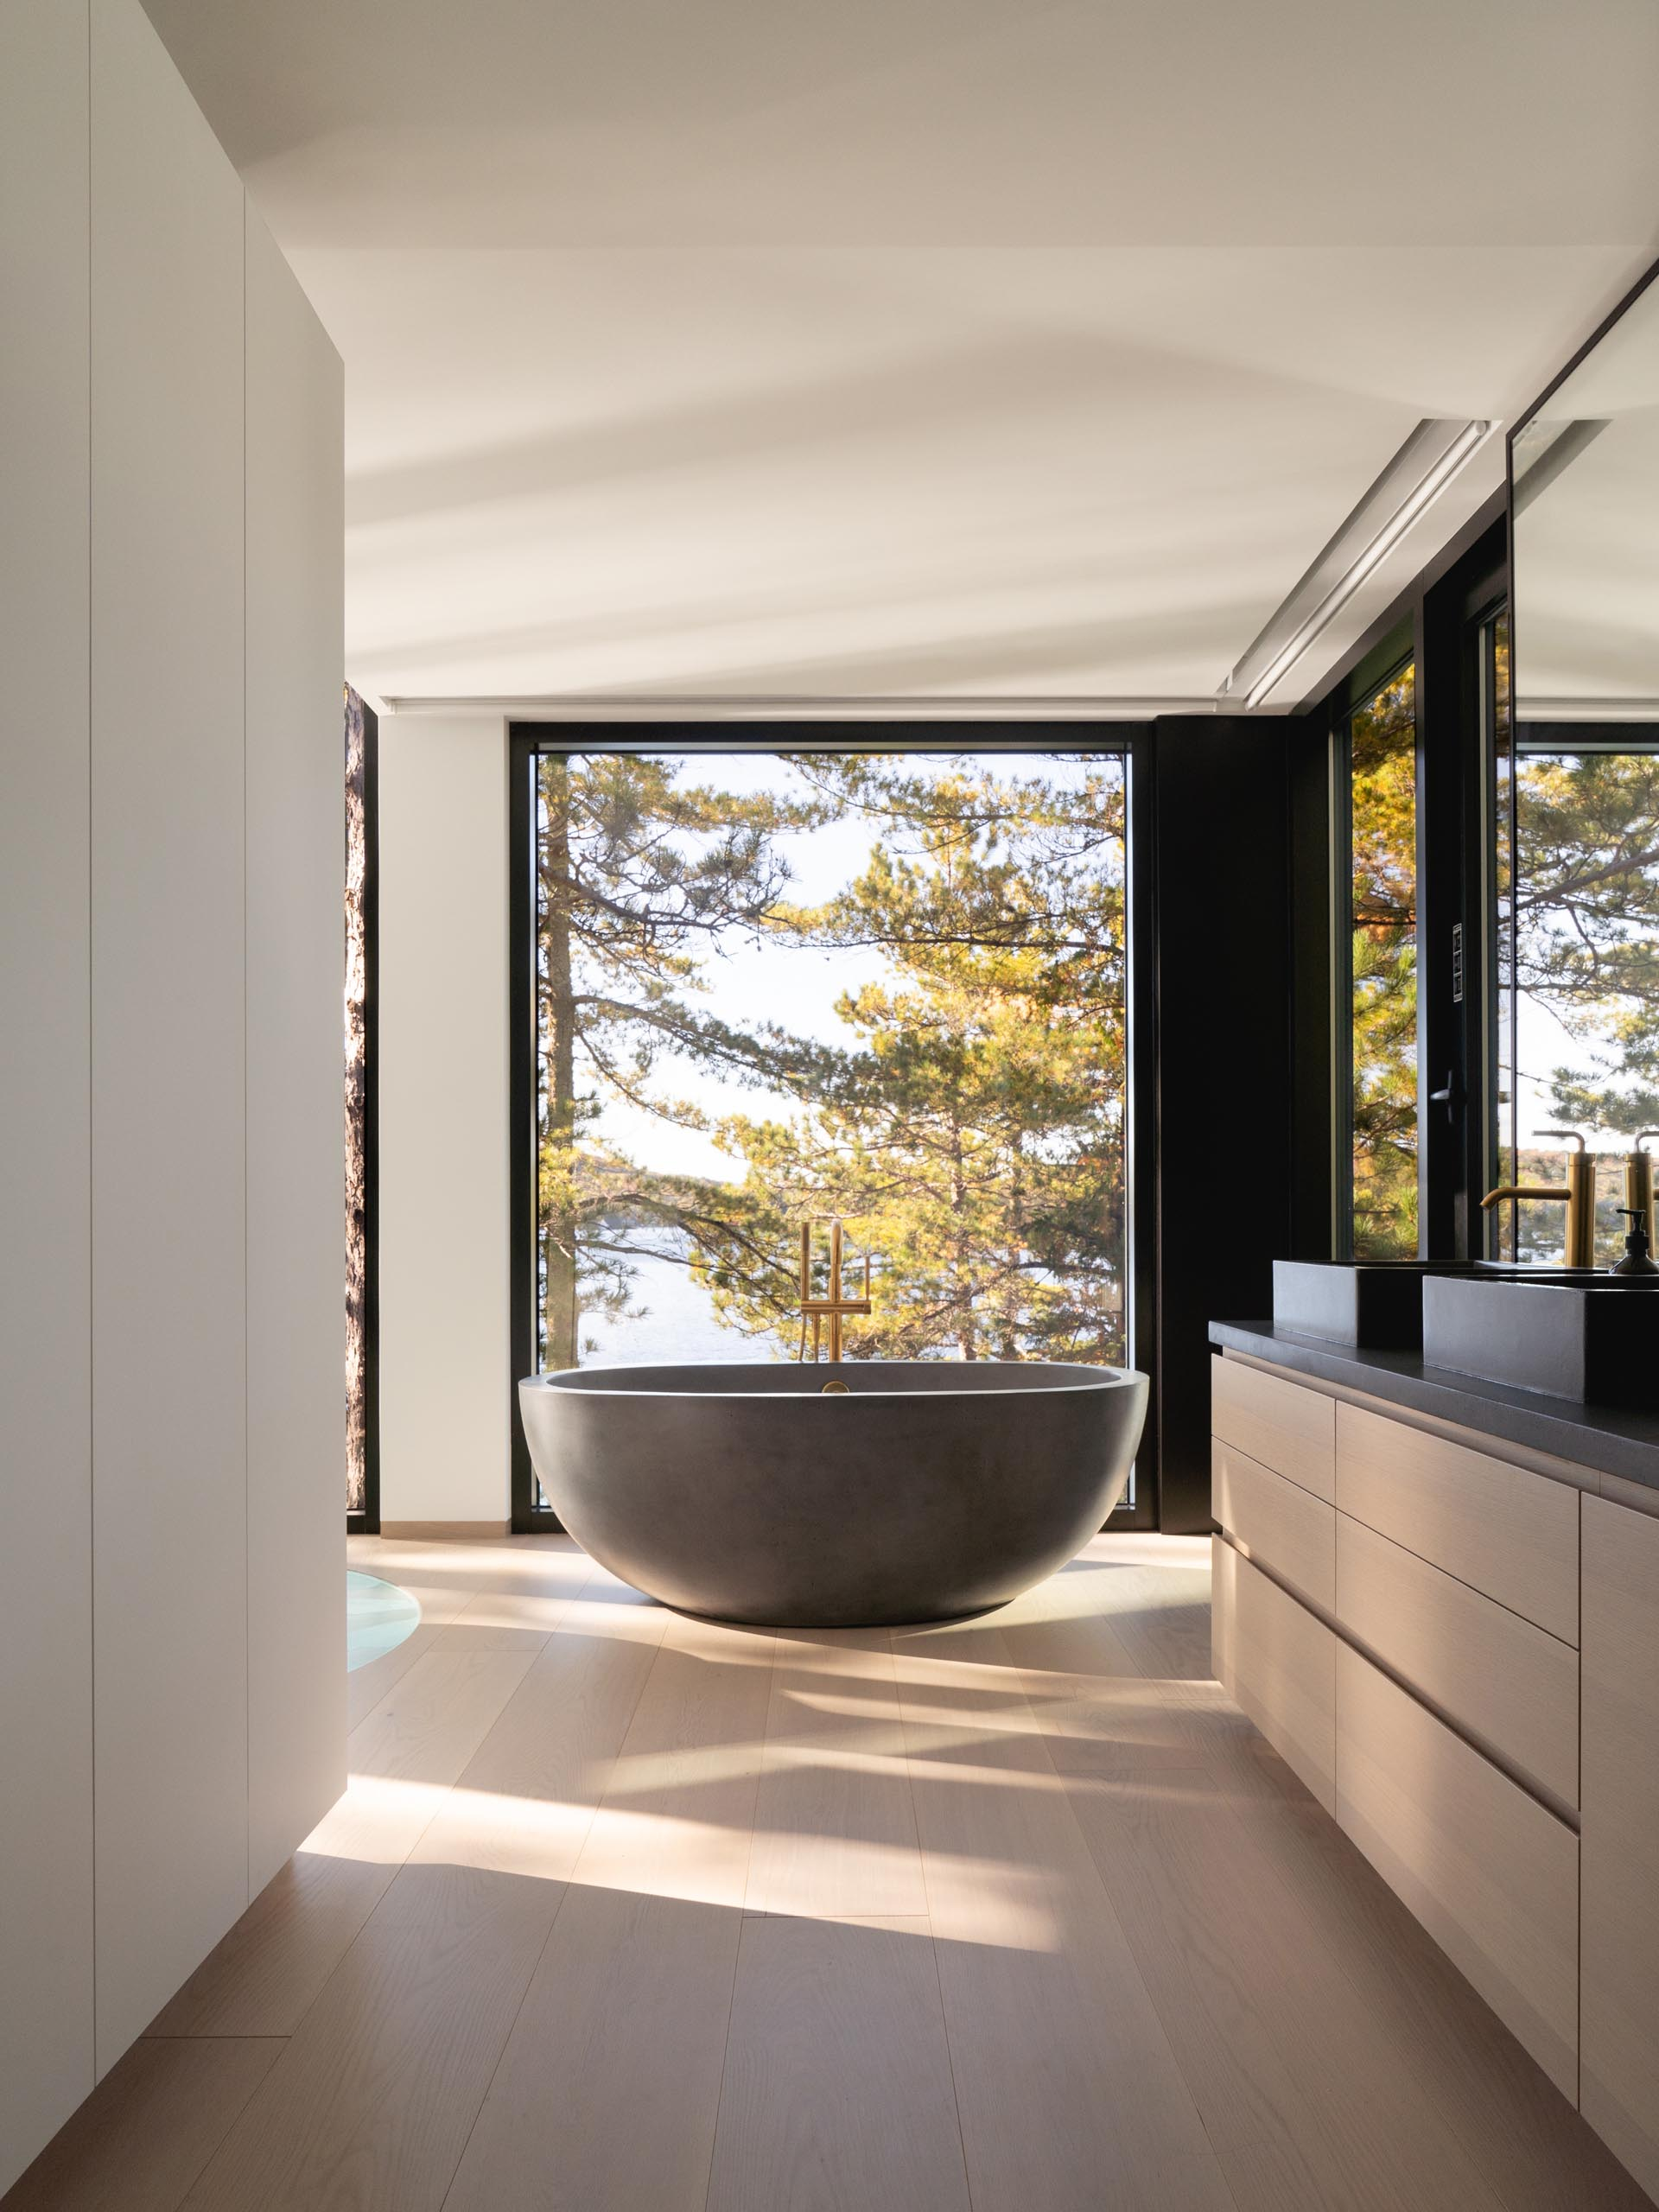 A modern en-suite bathroom with a freestanding bathtub in front of the window, and a minimalist wood vanity with dark countertop.